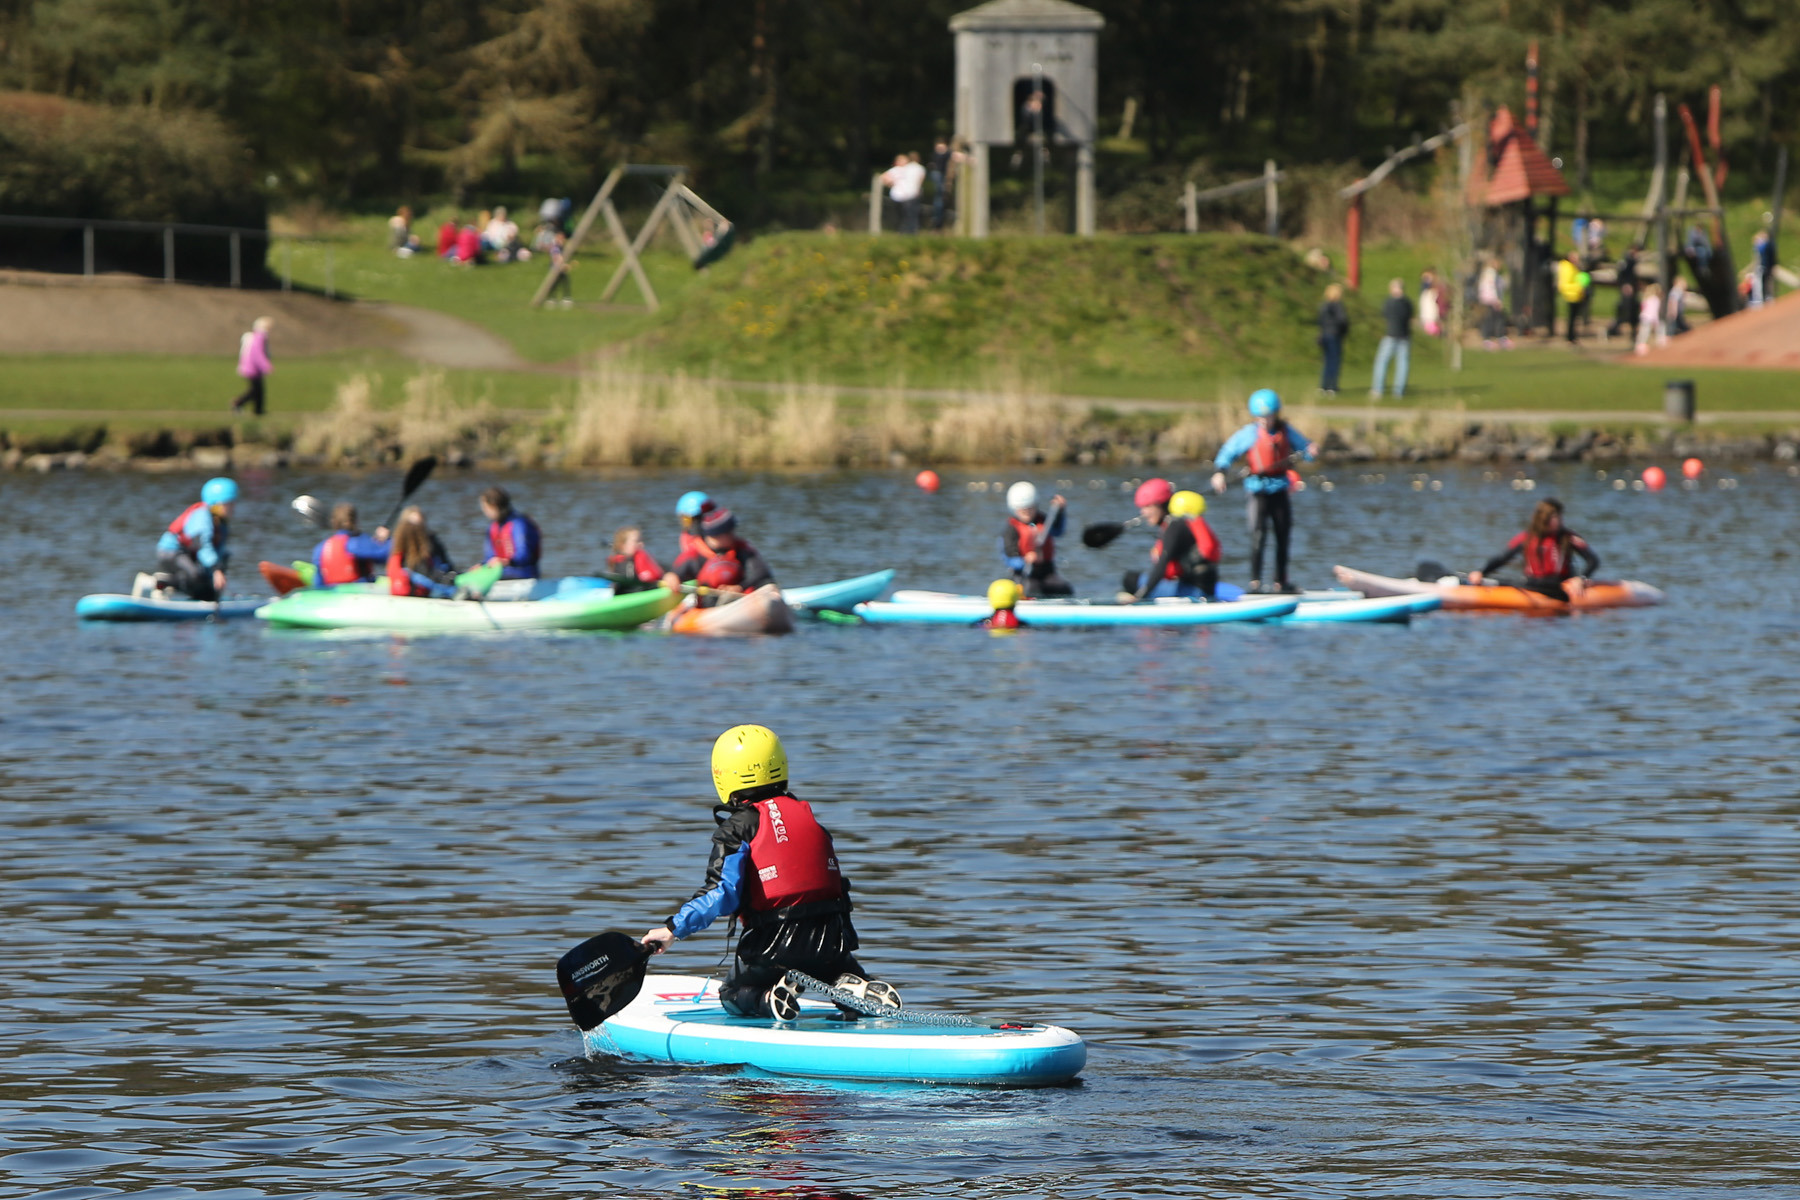 water activities at Lochore Meadows